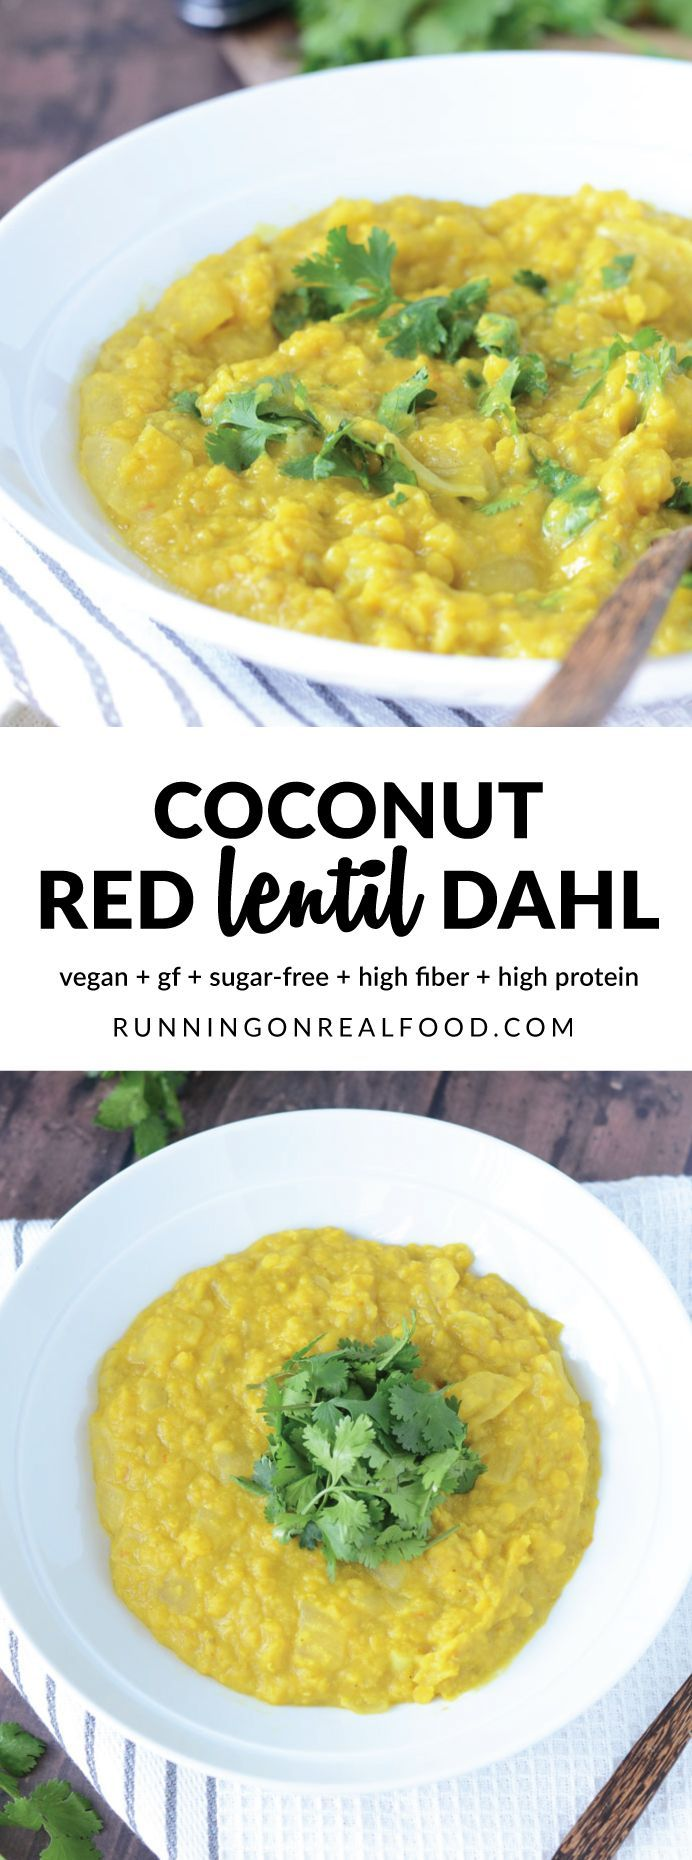 This amazing Coconut Red Lentil Dahl is super easy to make with simple ingredients in one pot, takes just 30 minutes and has the most incredible flavour. Vegan, high protein, high fibre. 19 grams of plant-based protein per 330 calorie serving! http://runningonrealfood.com/coconut-red-lentil-dahl/